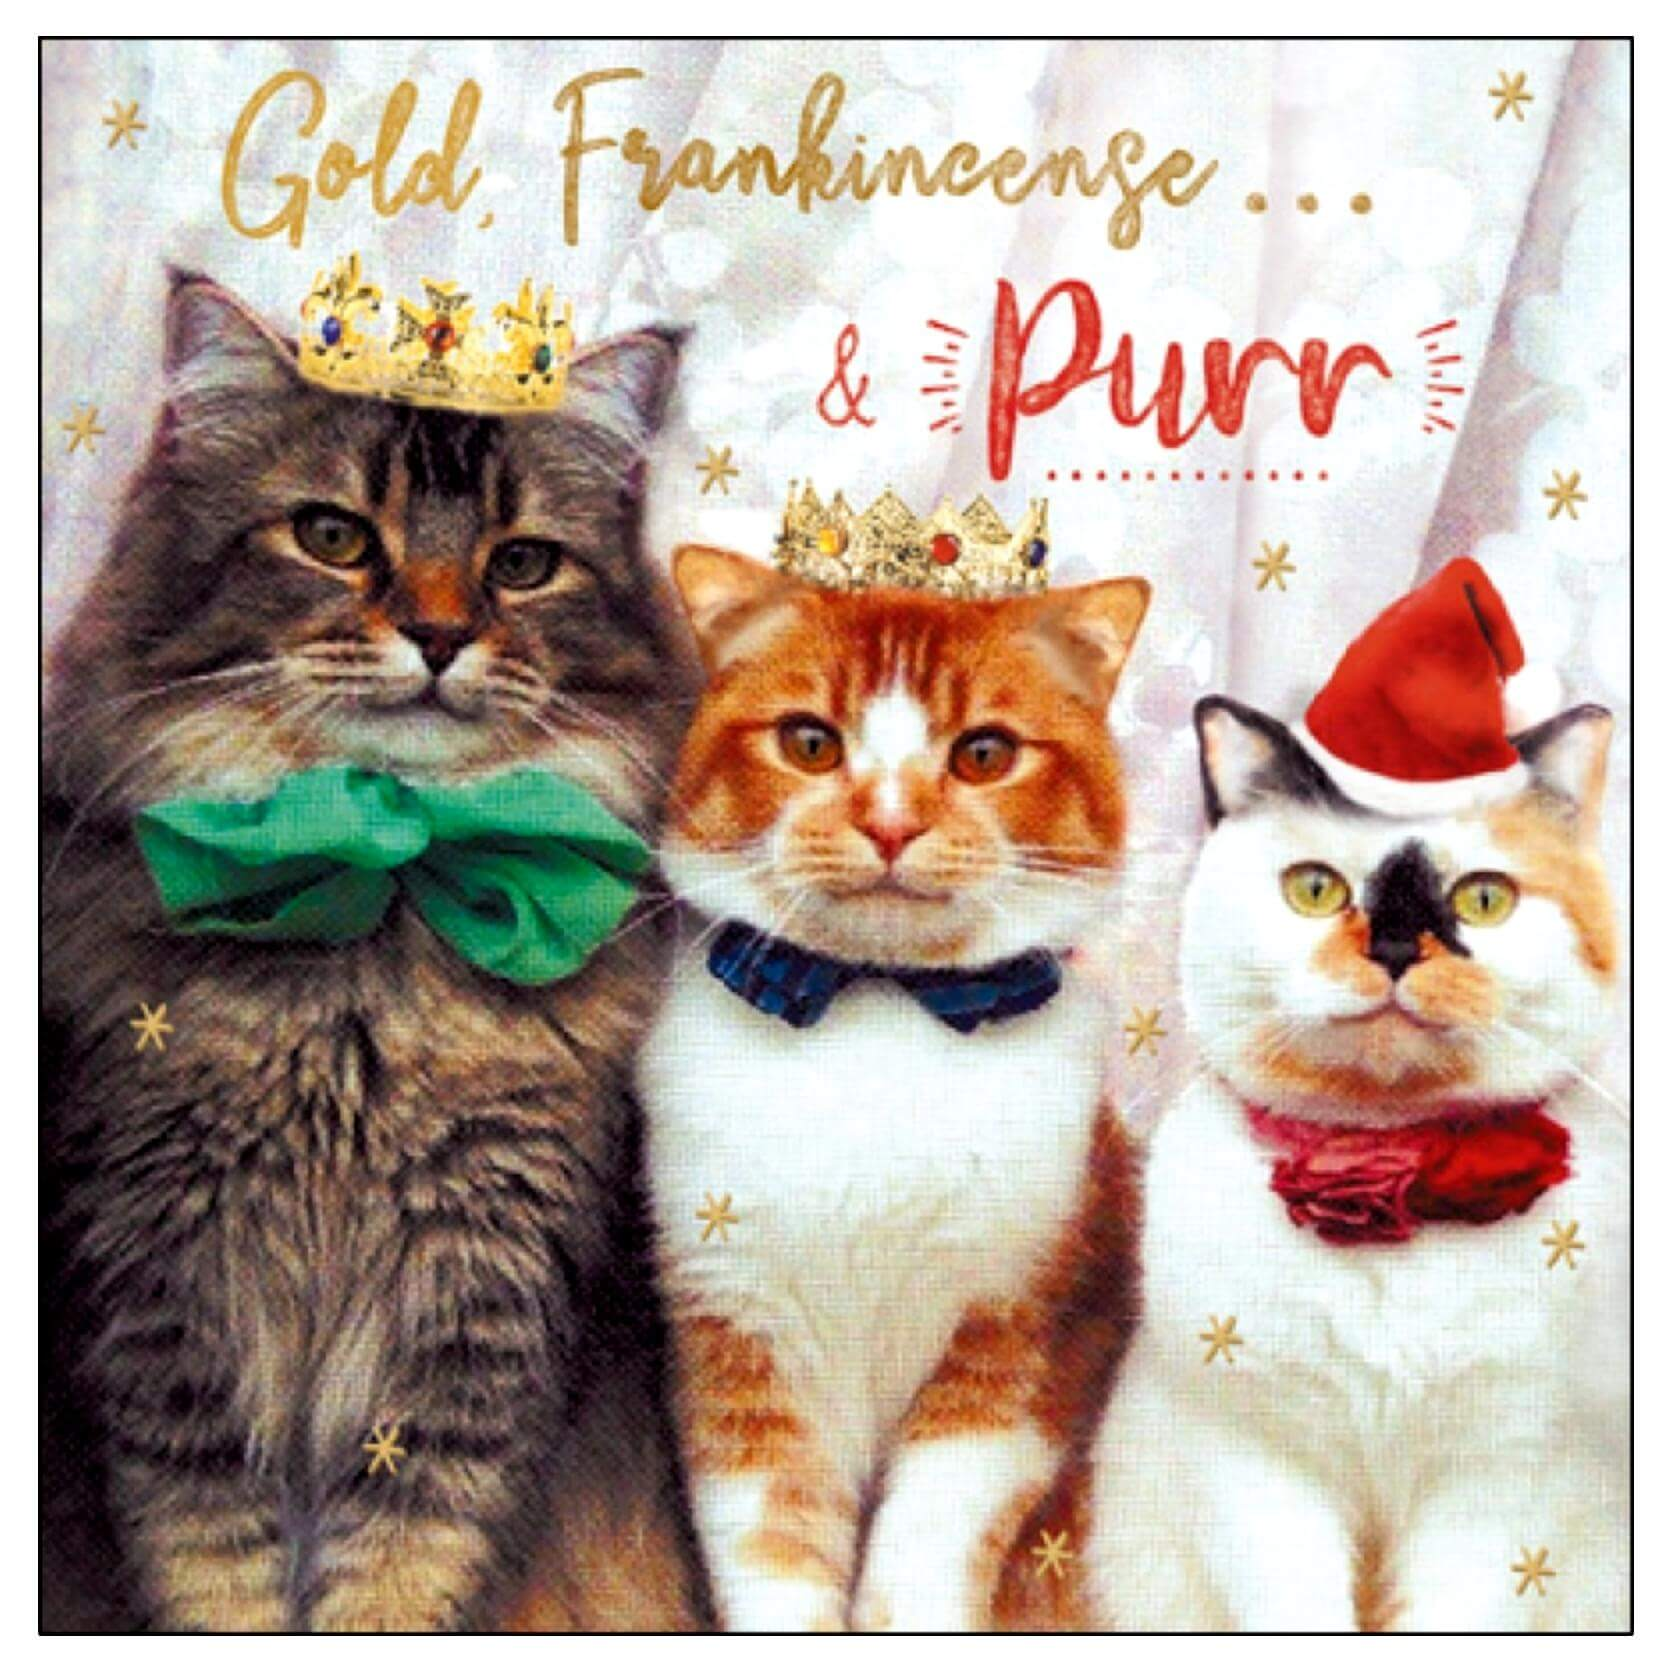 Gold, Frankincense and Purr Cat Christmas Card